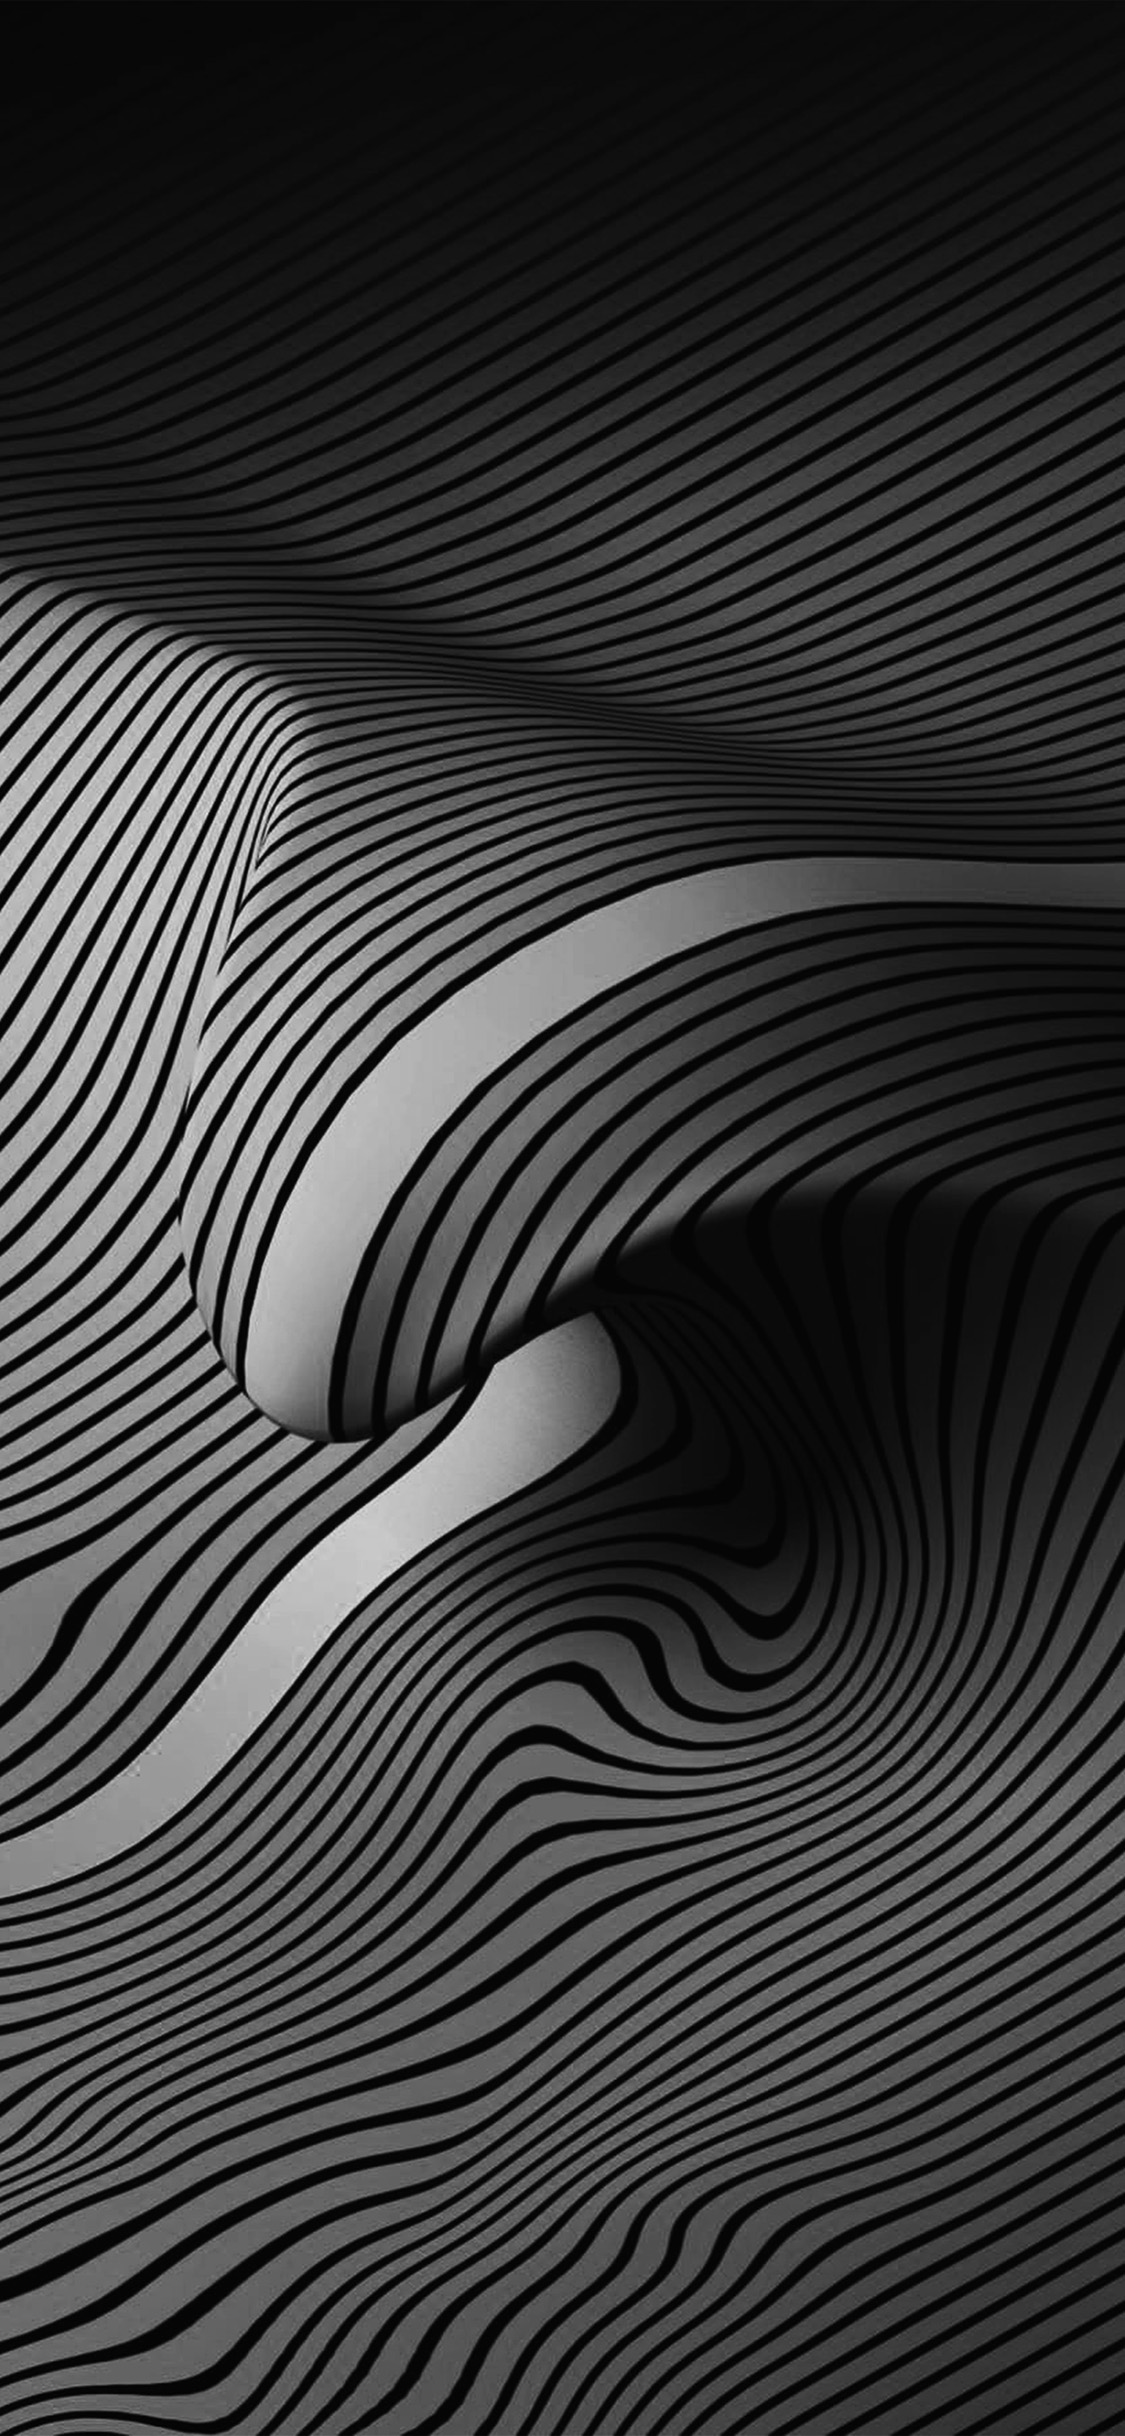 Vy37 Bw Dark Line Digital Abstract Pattern Background Wallpaper